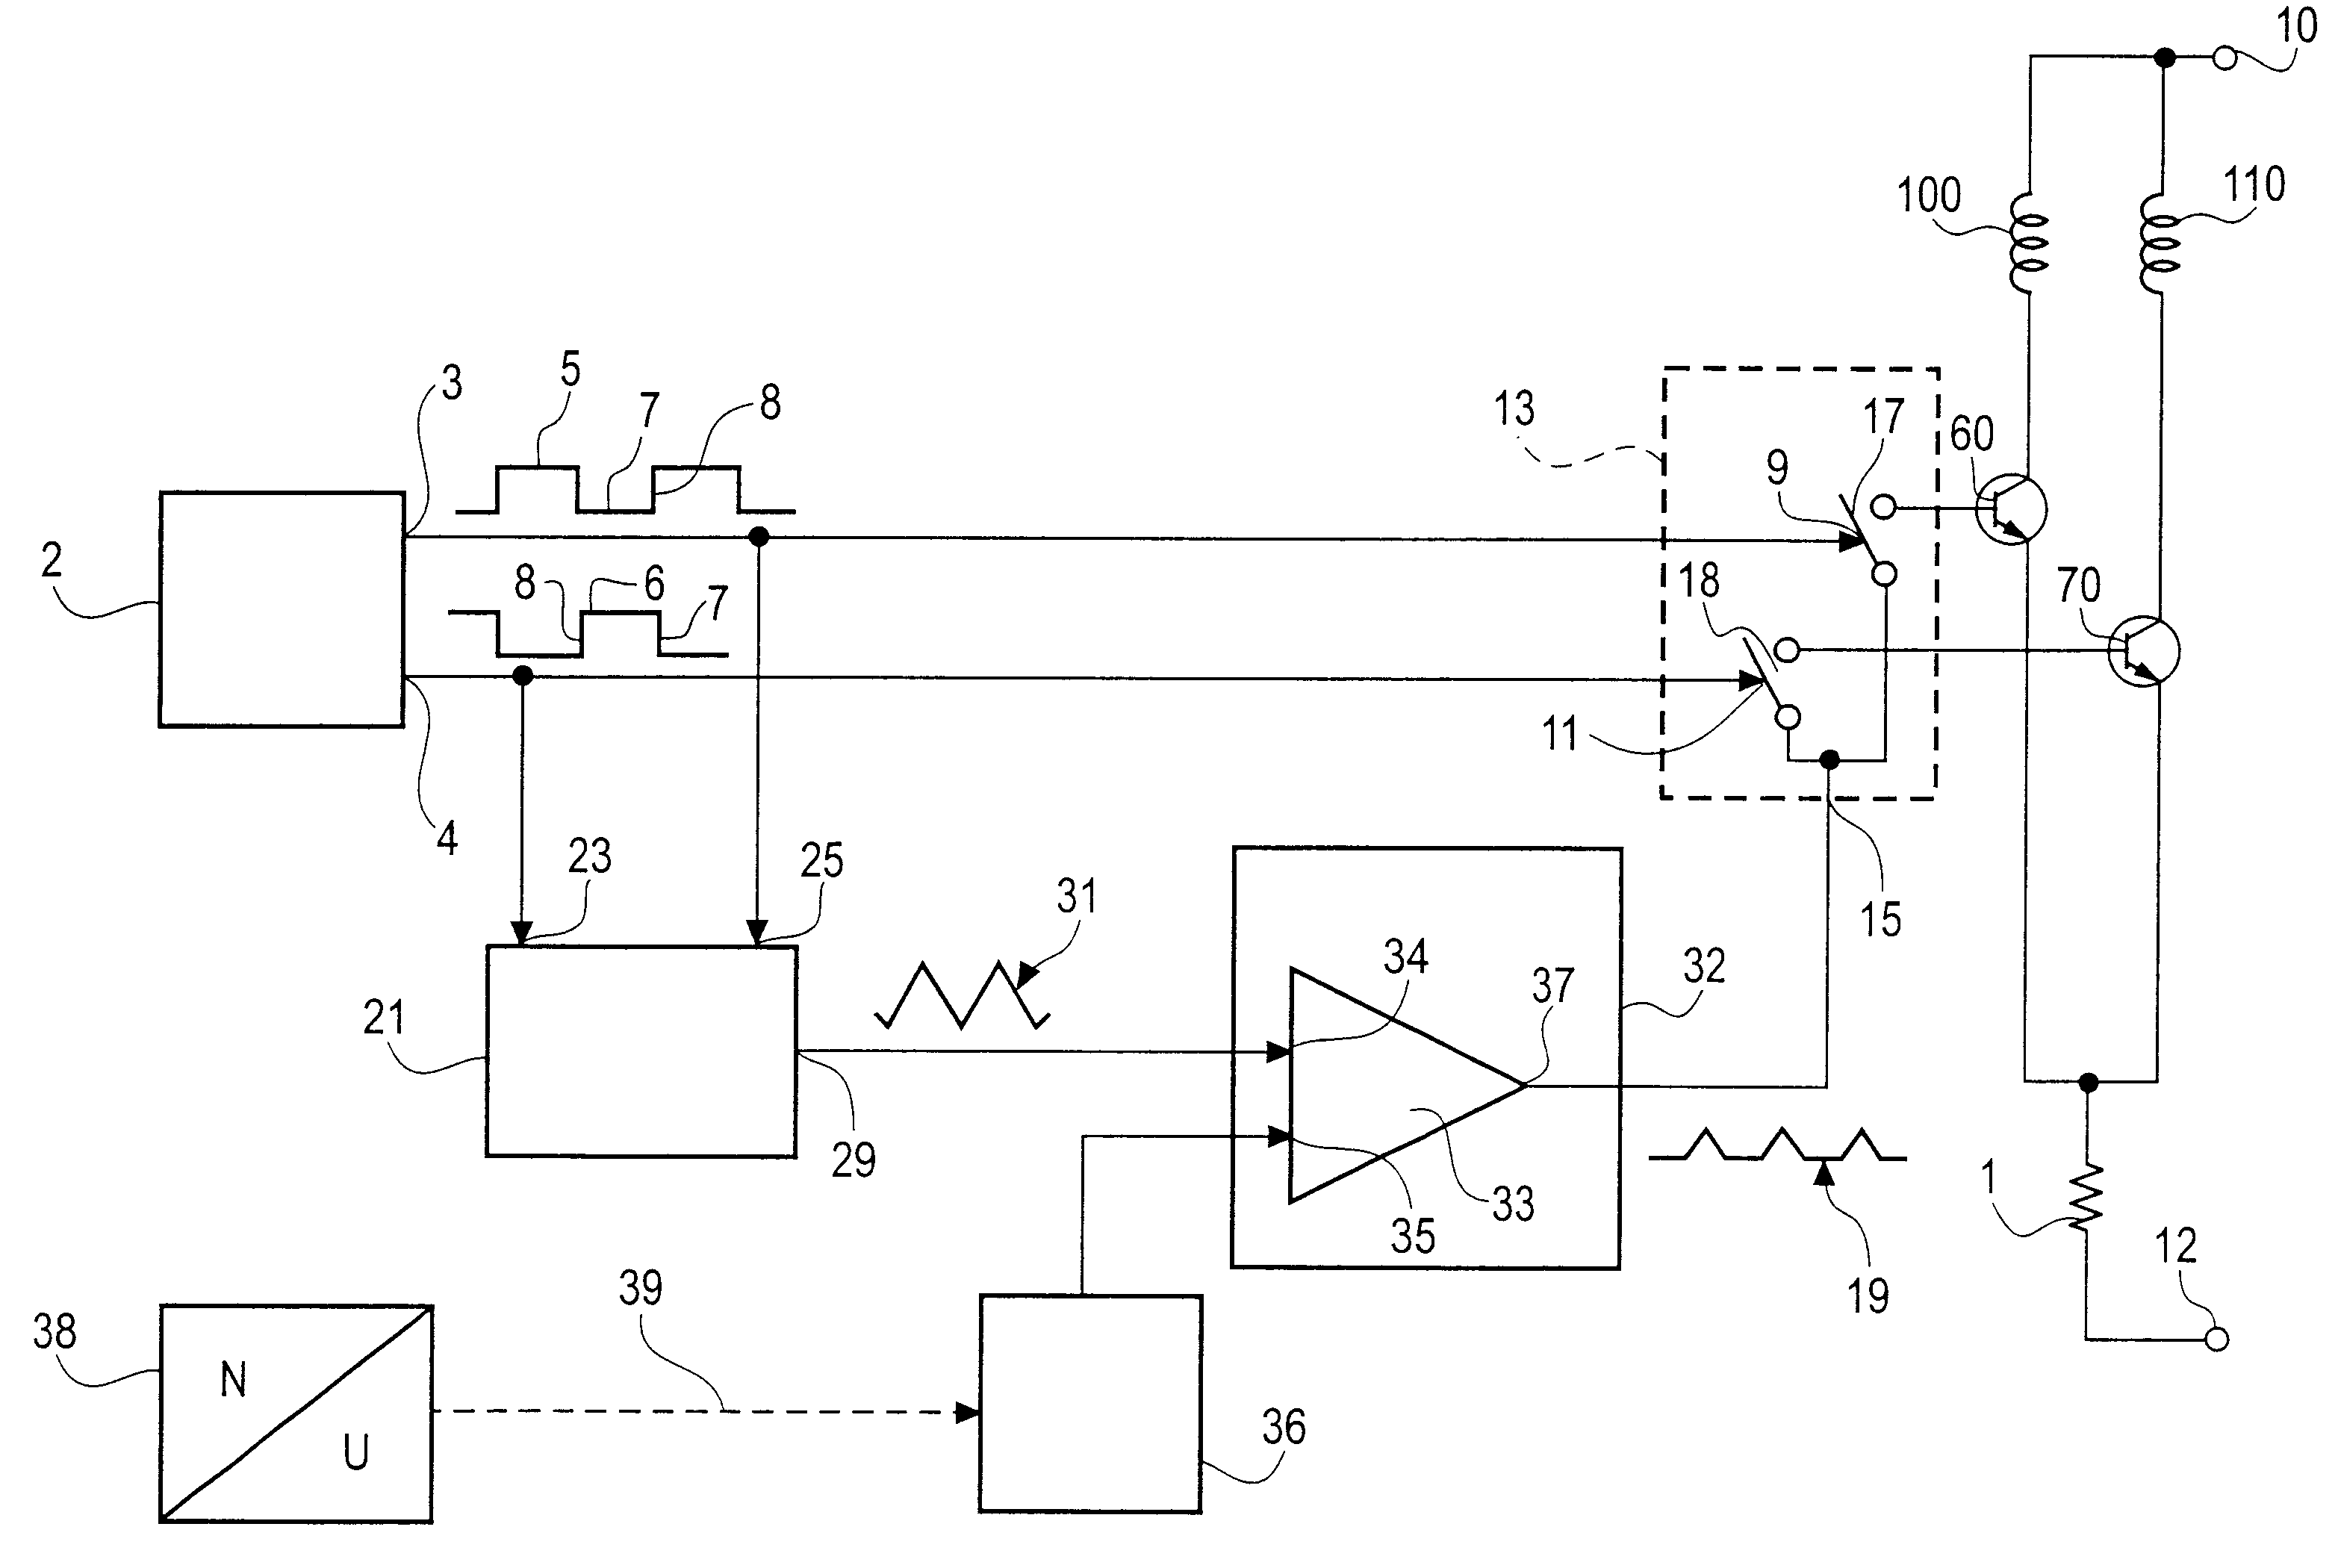 Patent Usre37589 Collectorless Direct Current Motor